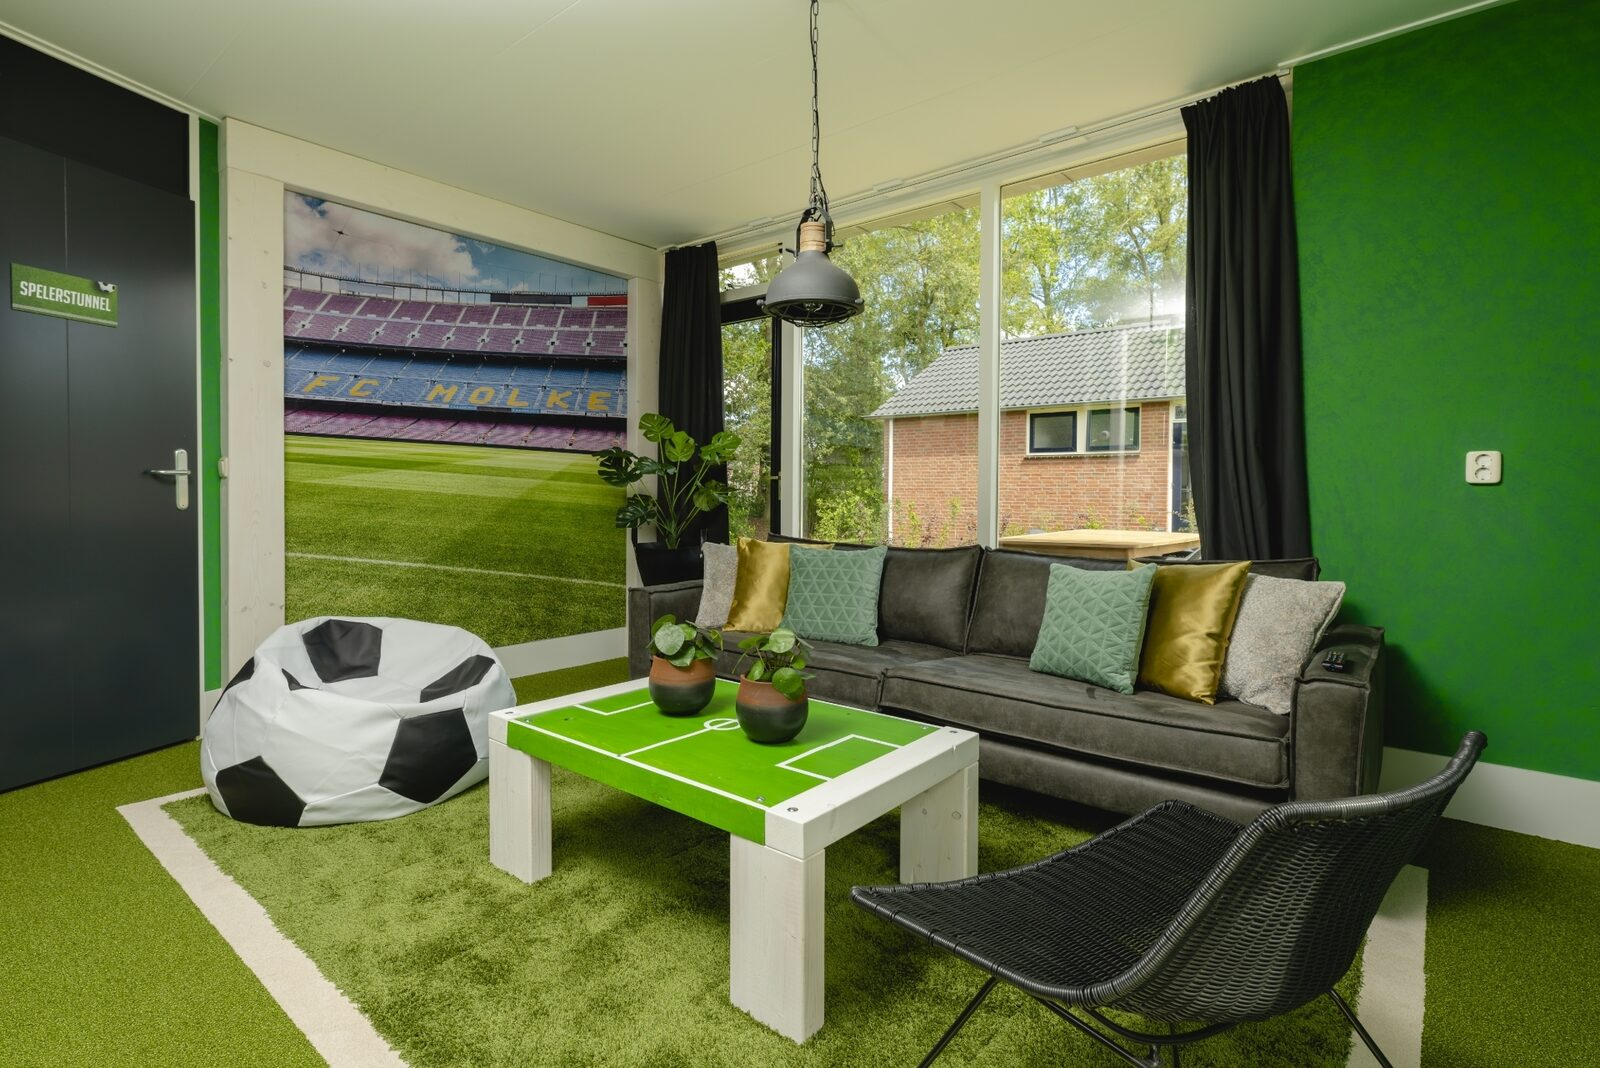 Child Bungalow | FC Mölke Stadium | 6 People